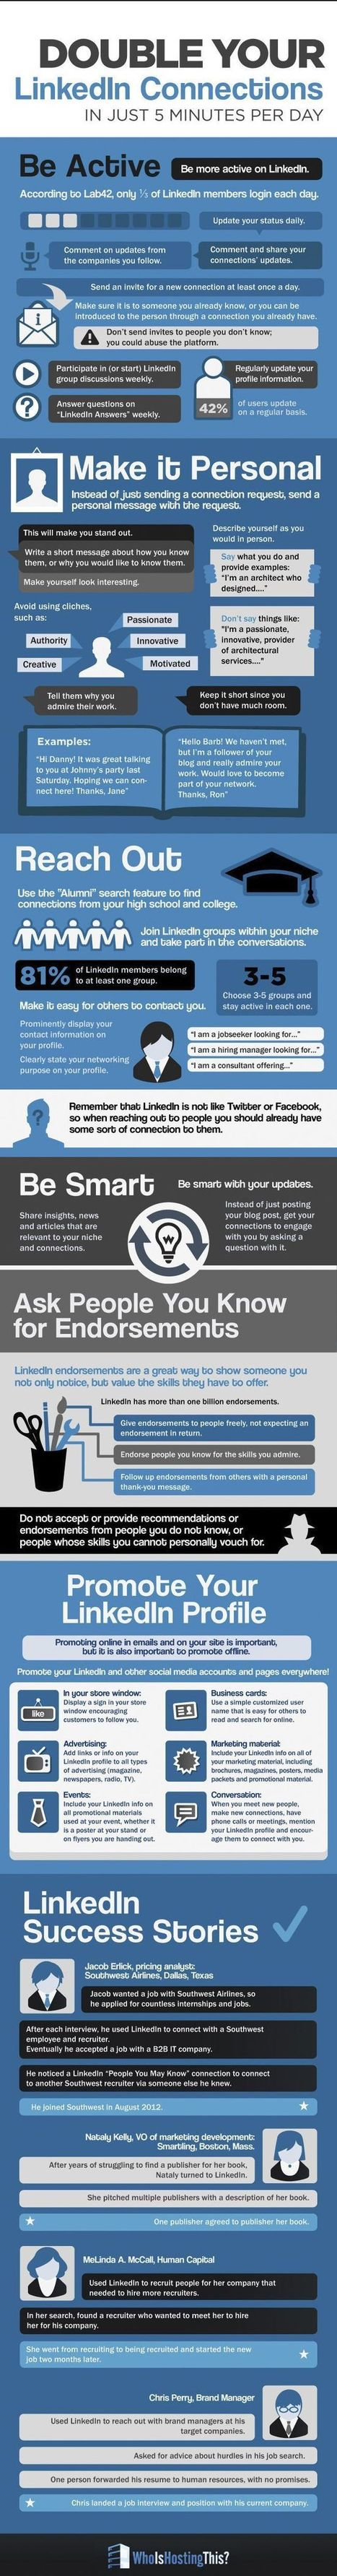 How to Double Your LinkedIn Connections {Infographic} - Best Infographics | Digital-News on Scoop.it today | Scoop.it